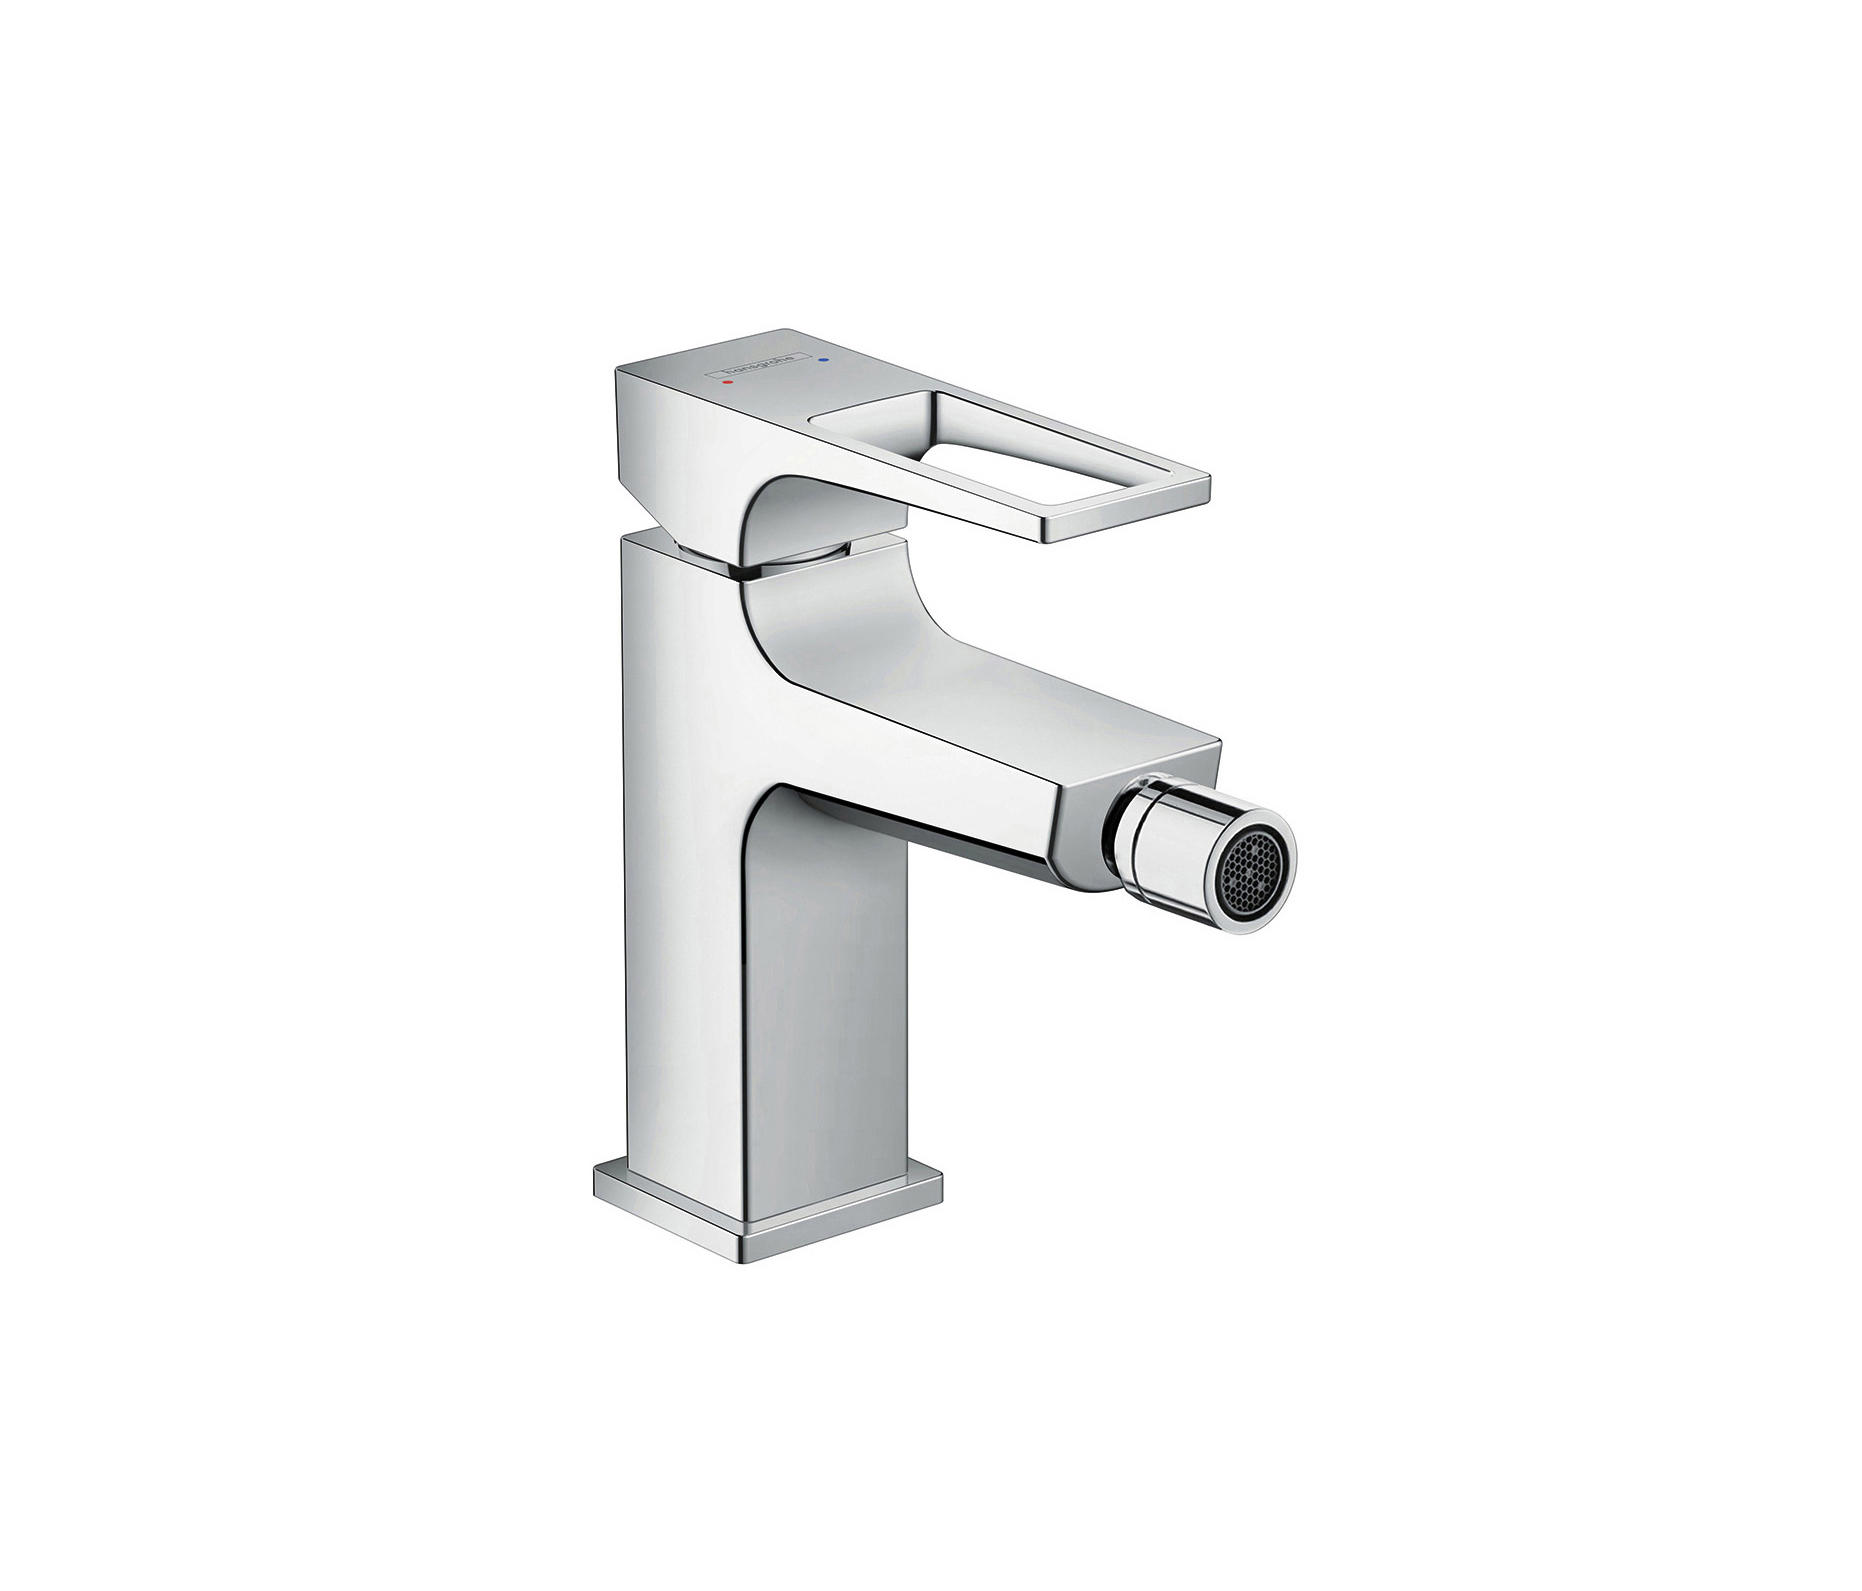 hansgrohe metropol single lever bidet mixer with loop handle and push open waste set wash basin. Black Bedroom Furniture Sets. Home Design Ideas